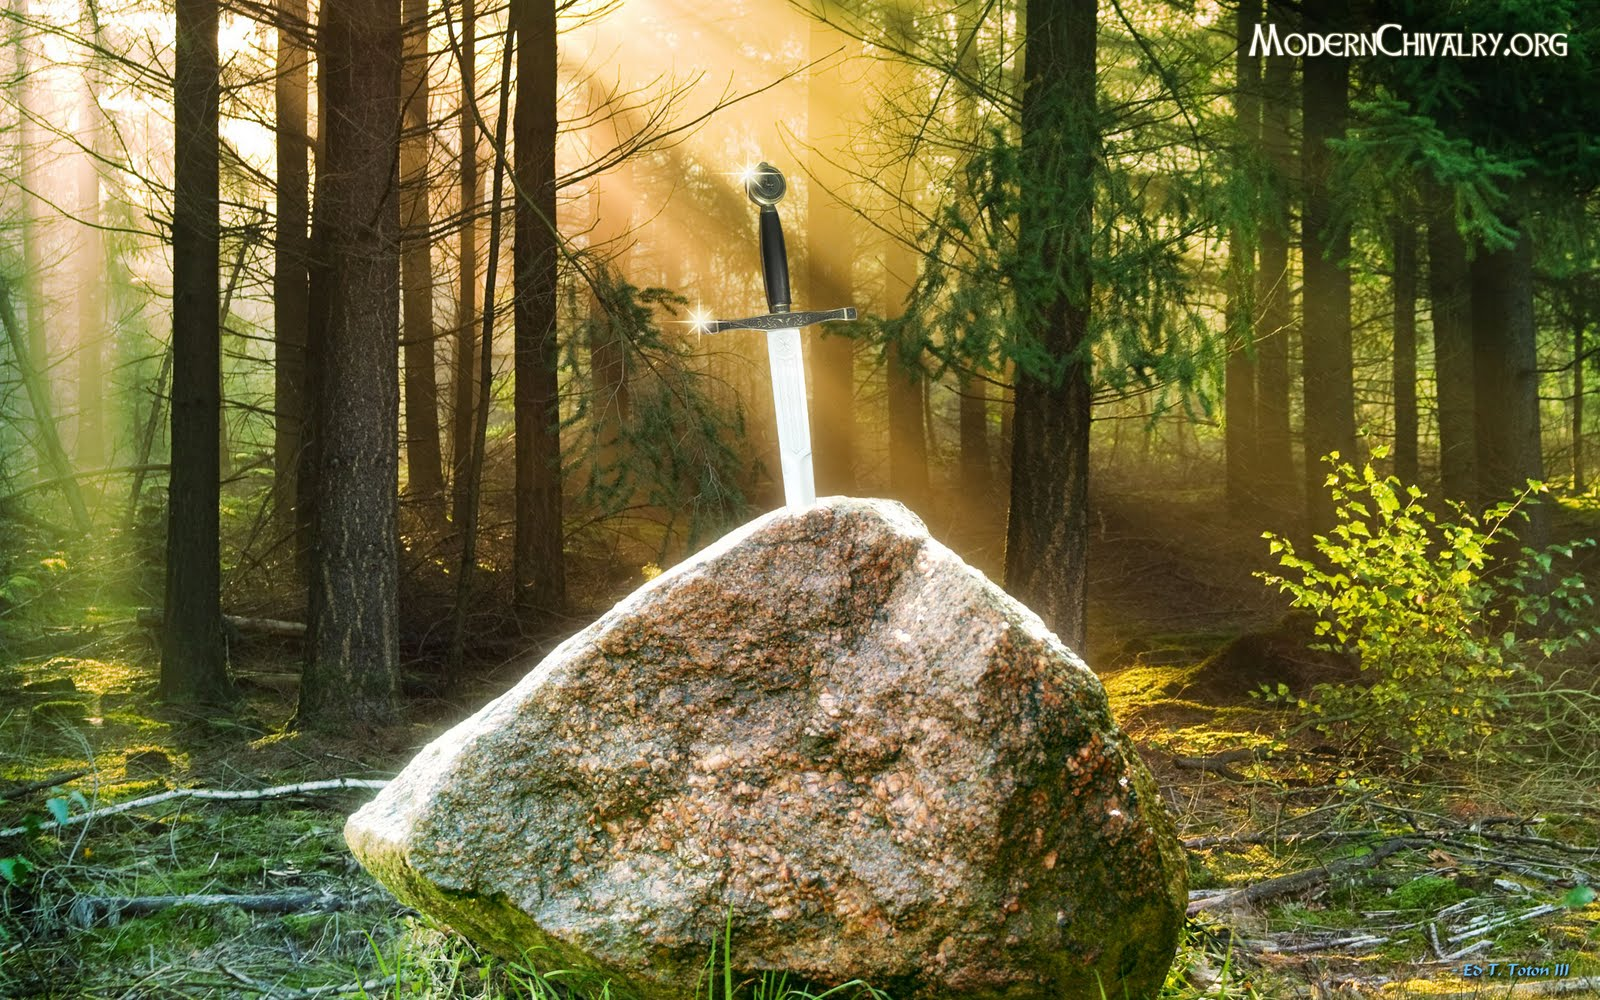 Janelle Mcintosh: the sword in the stone wallpaper